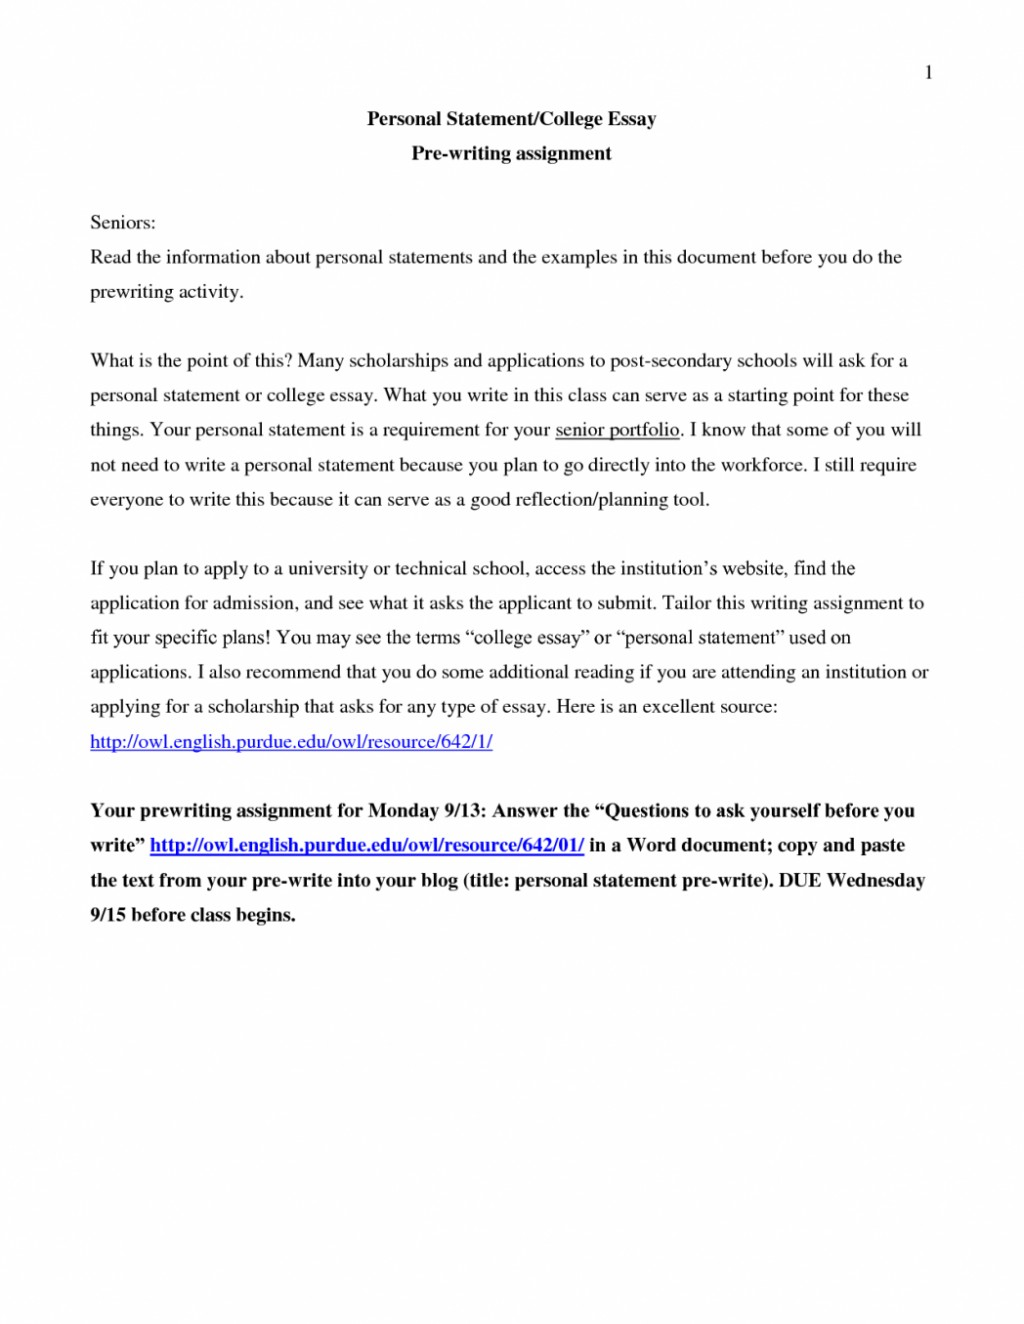 011 Expository Essay Samples For College Fake Generator Sample T2u0n Outline Title Free Idea 1048x1356 Amazing Large